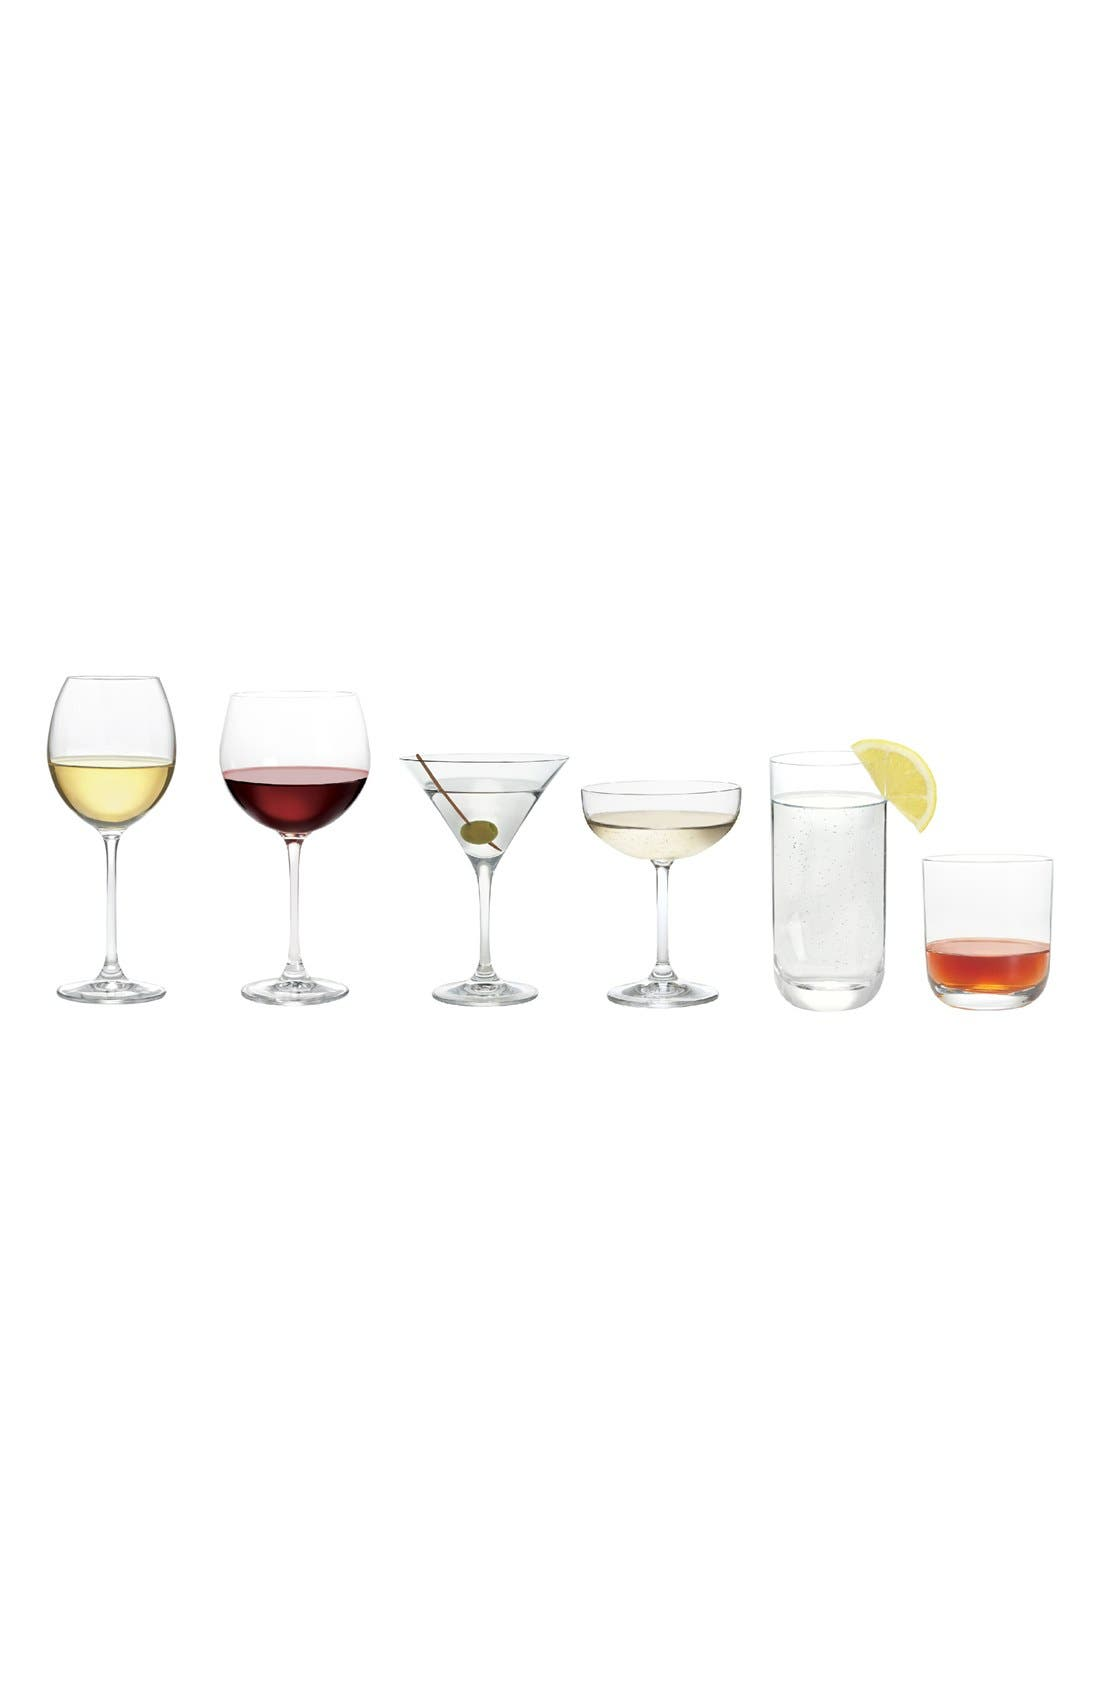 Nordstrom at Home Madrona Drinkware Collection